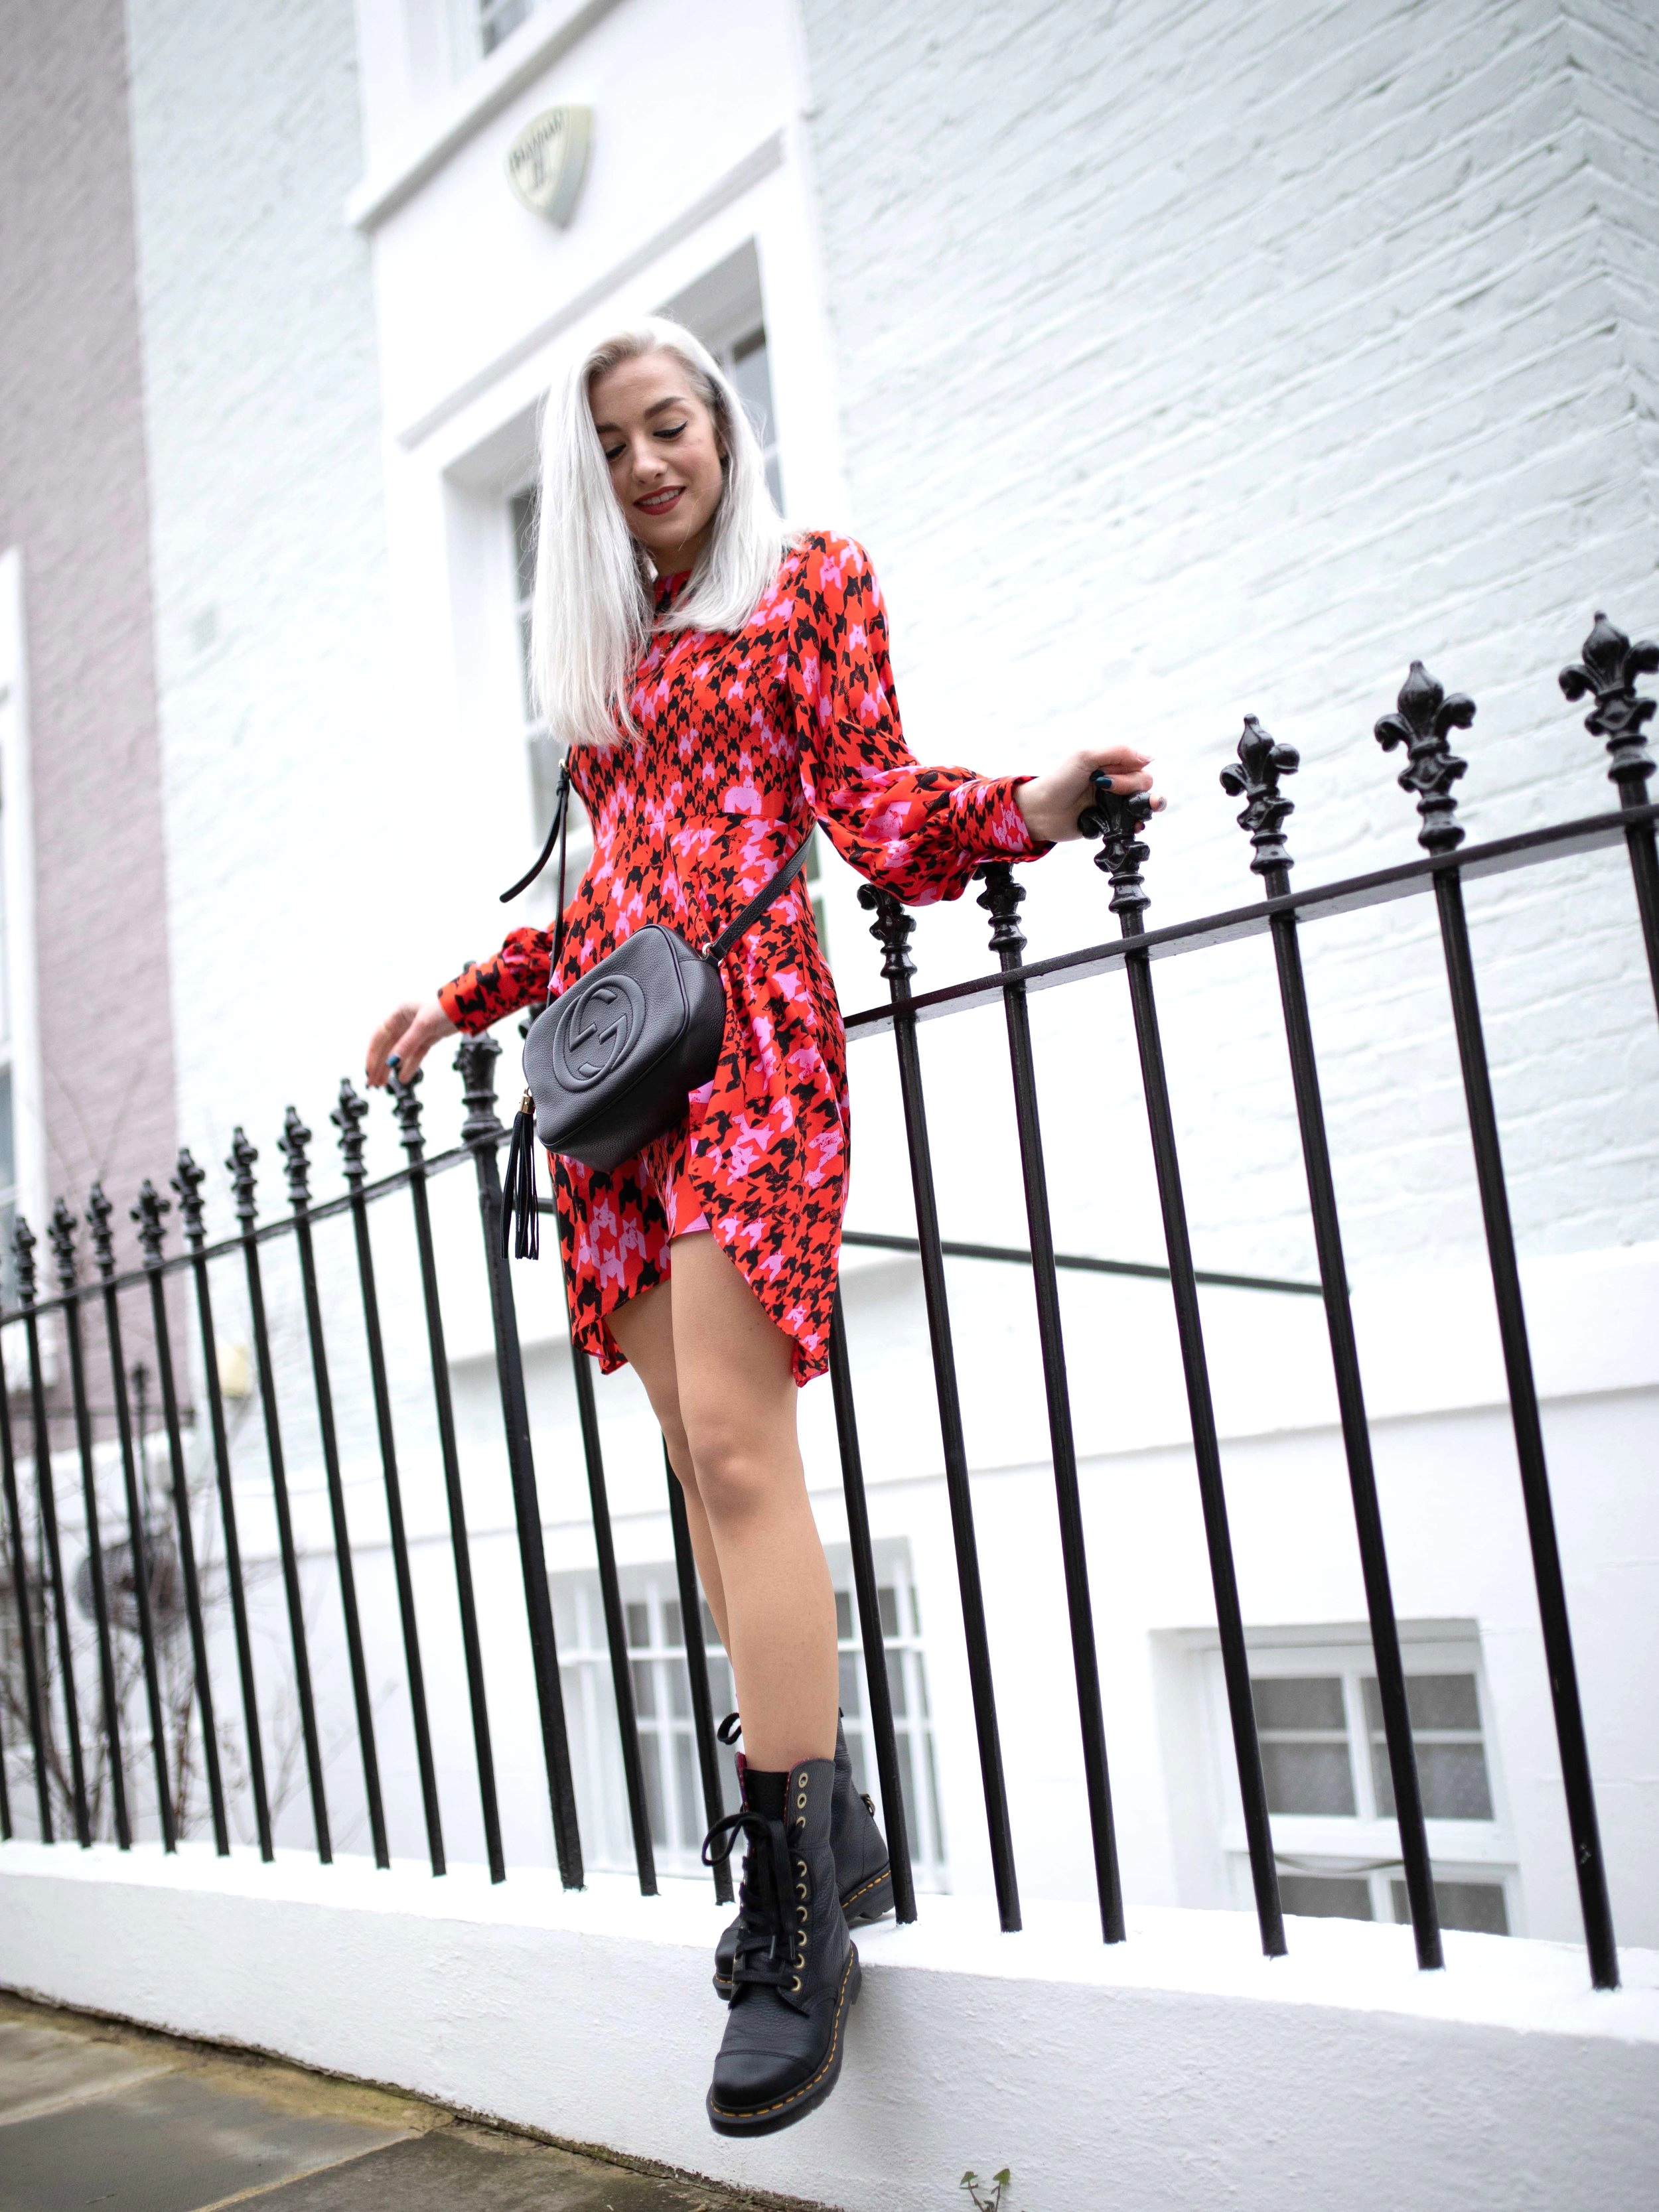 Outfit Details: Dress: Topshop, Boots: Dr. Martins, Bag: Gucci, Necklace: Urban Outfitters